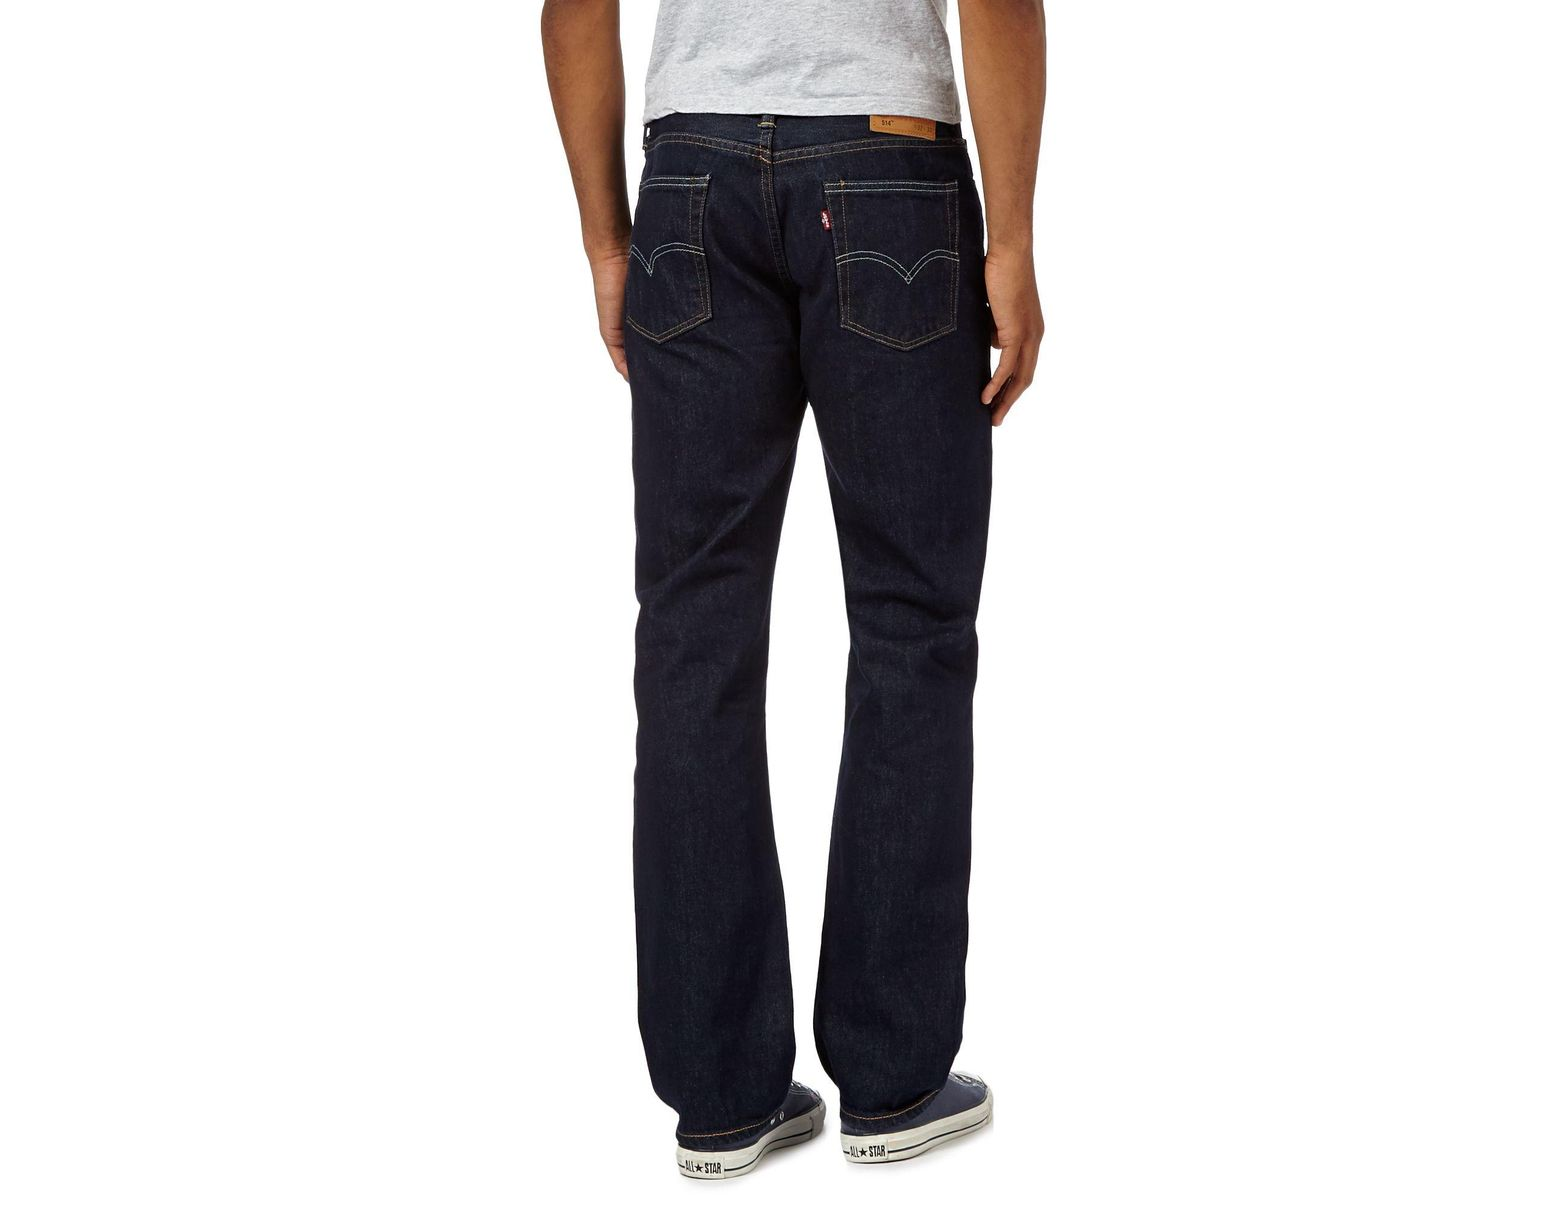 b7c0705088c Levi's Dark Blue One Wash '514' Straight Jeans in Blue for Men - Lyst